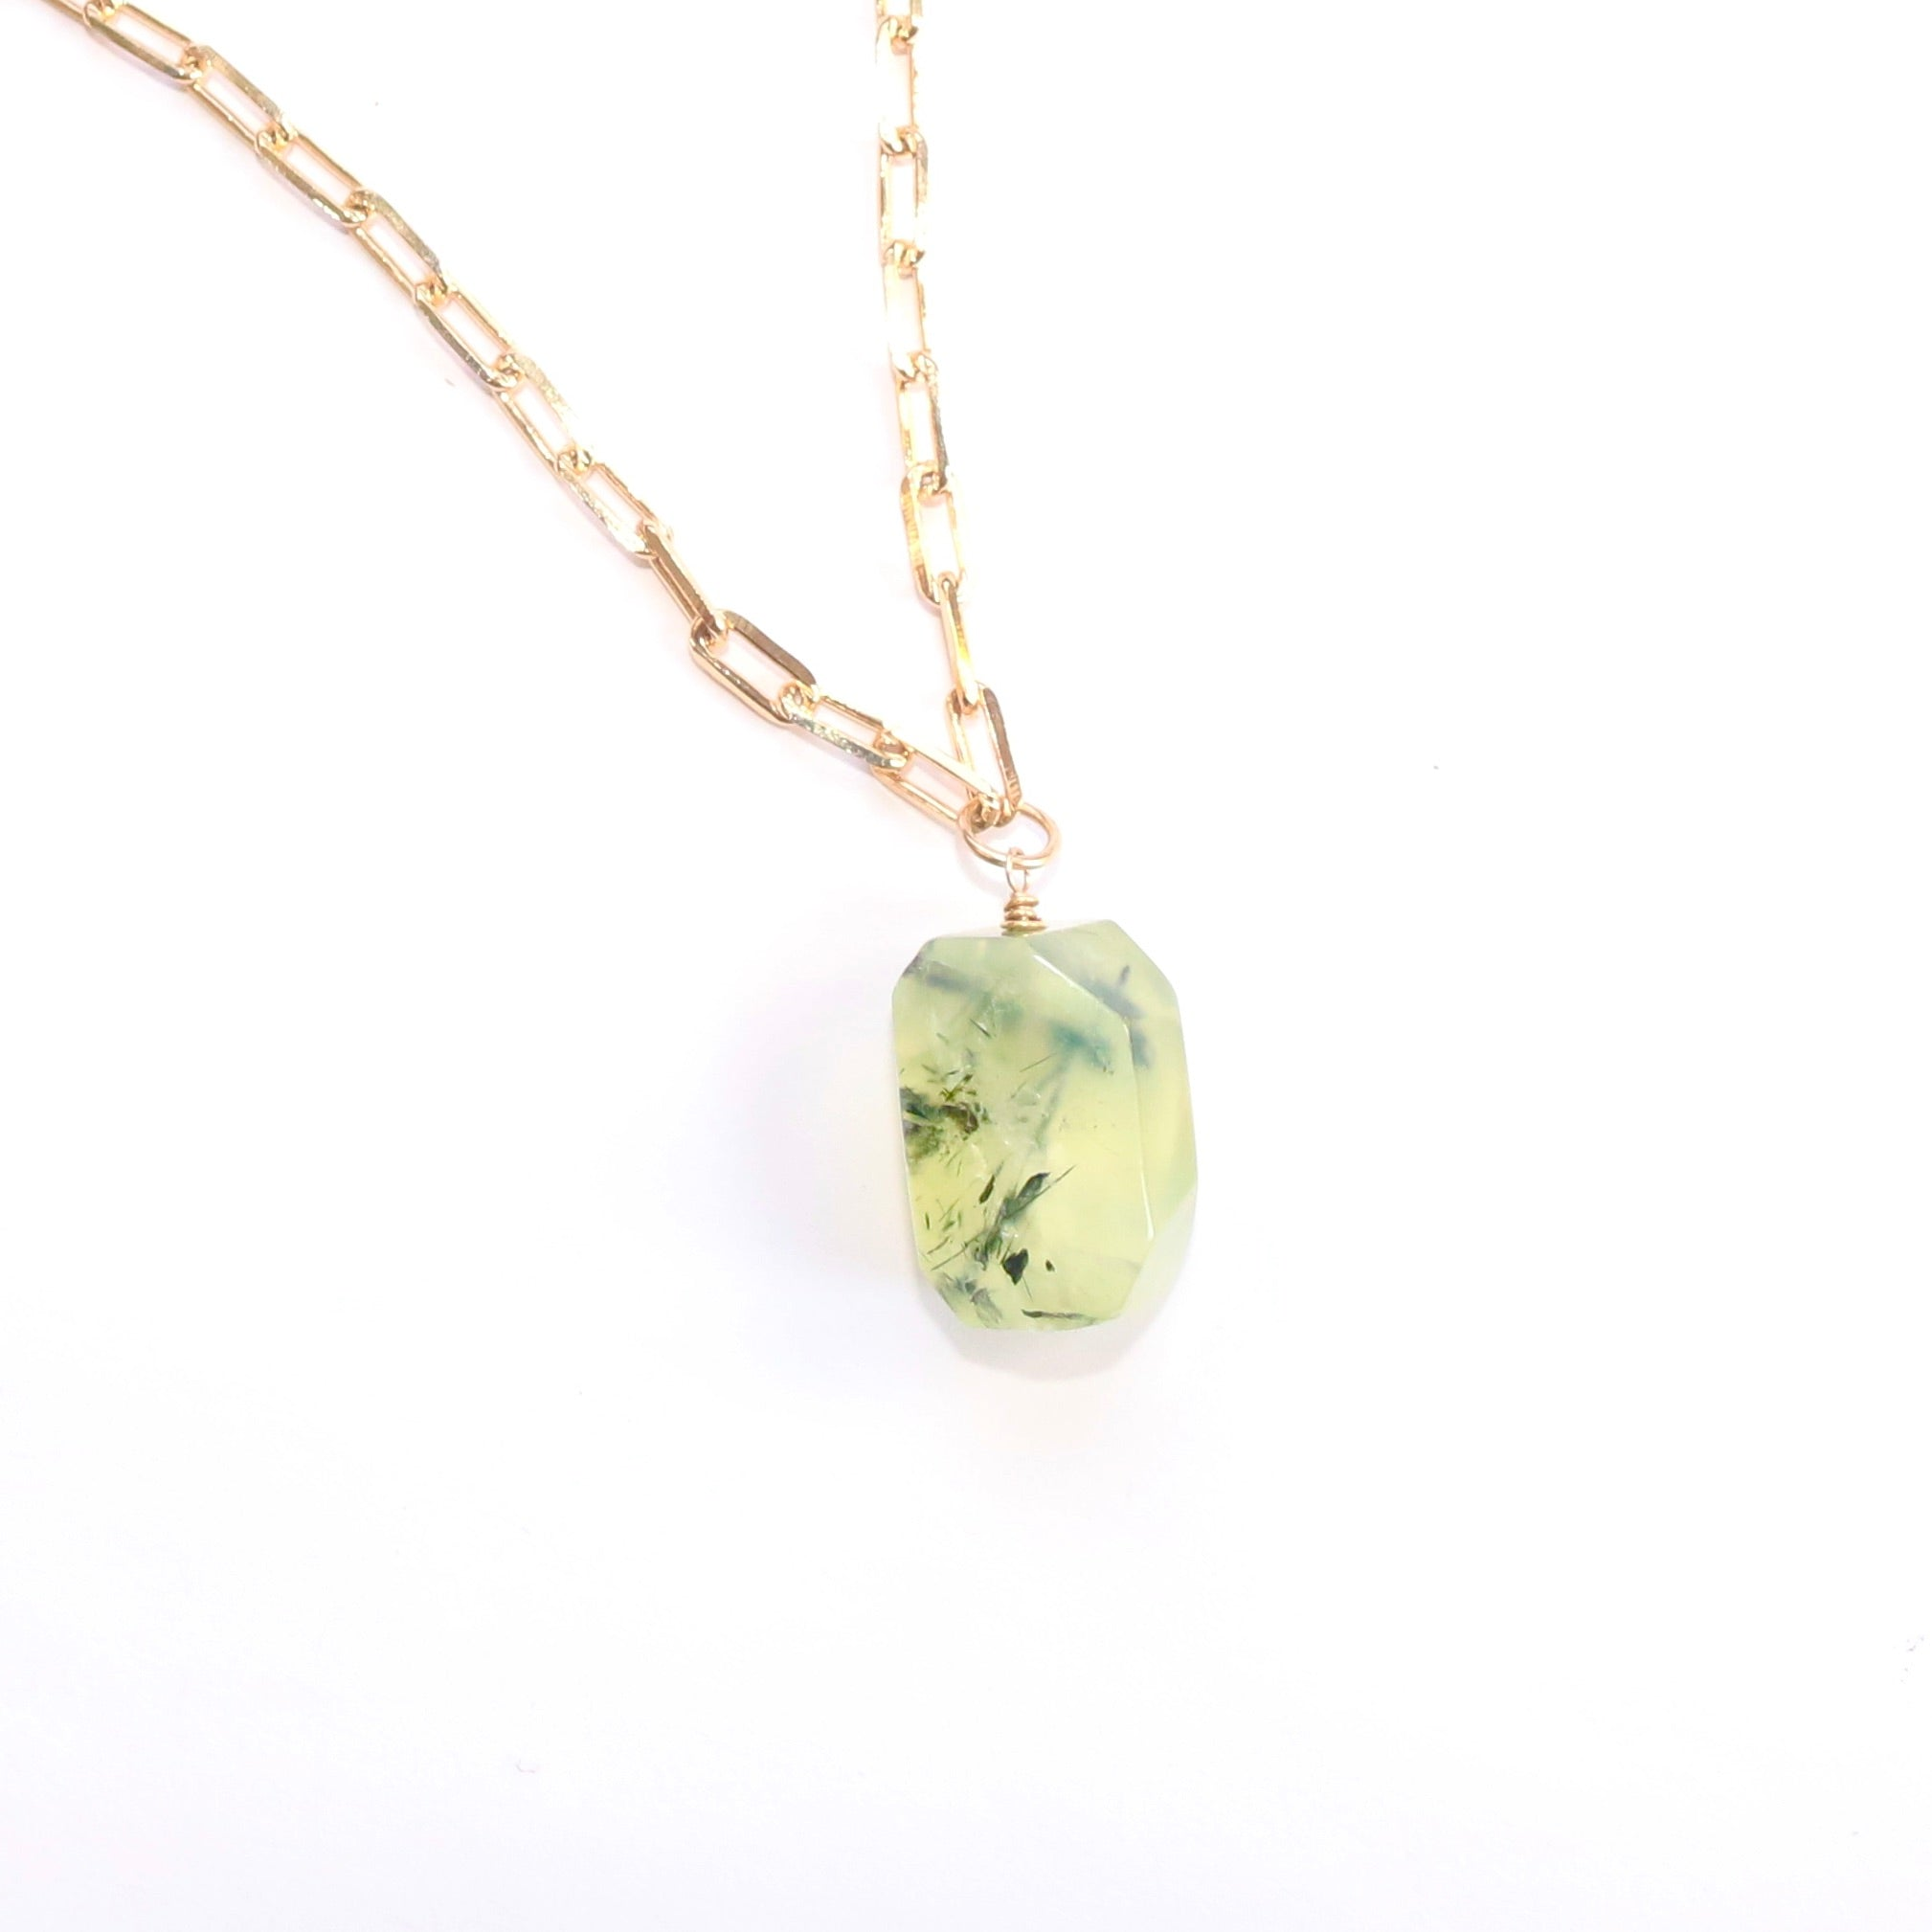 Prehnite Pendant on Paperclip Chain